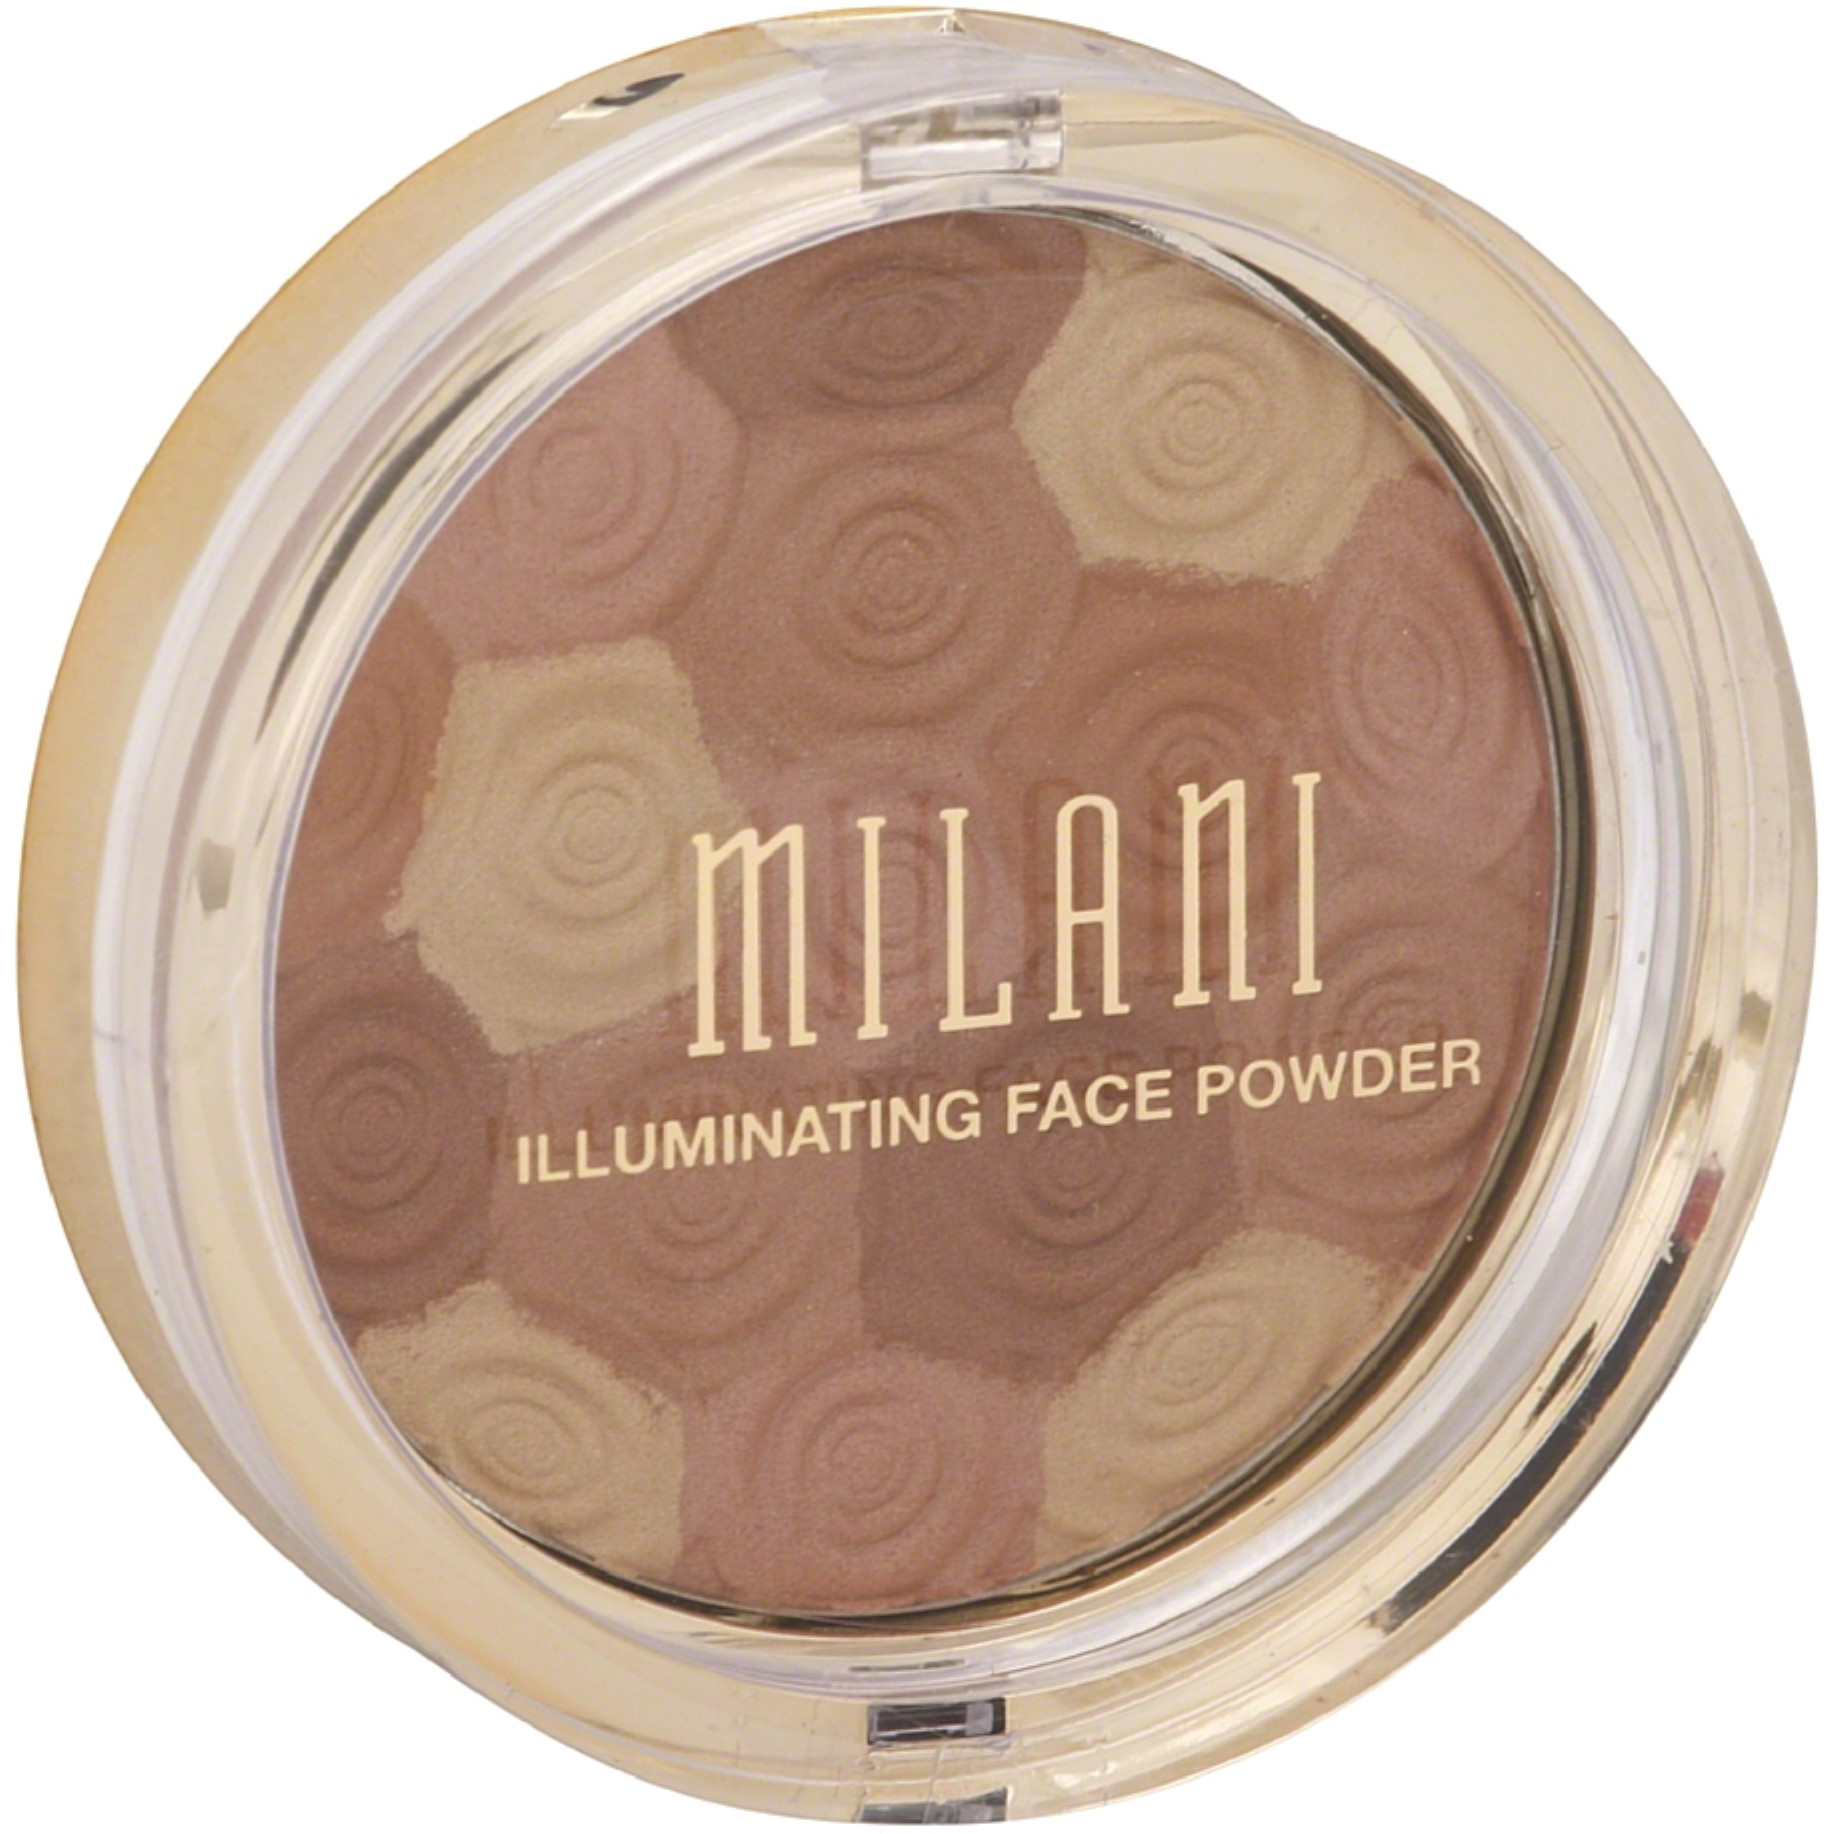 Milani Illuminating Face Powder, Hermosa Rose [02] 0.35 oz (Pack of 4)